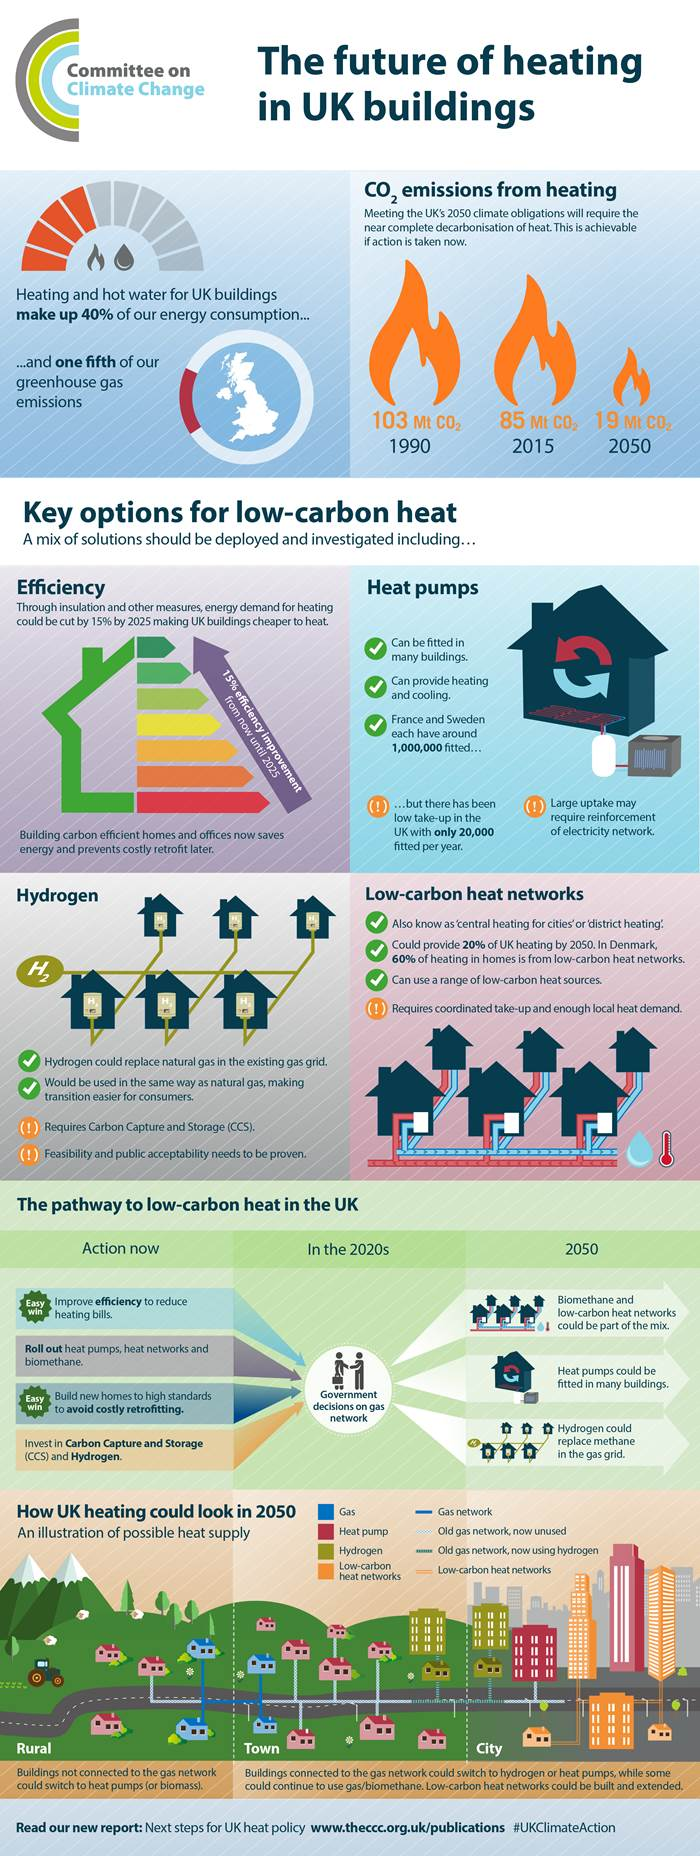 Infographic by UK Committee on Climate Change about 'Next Steps for UK Heat Policy'